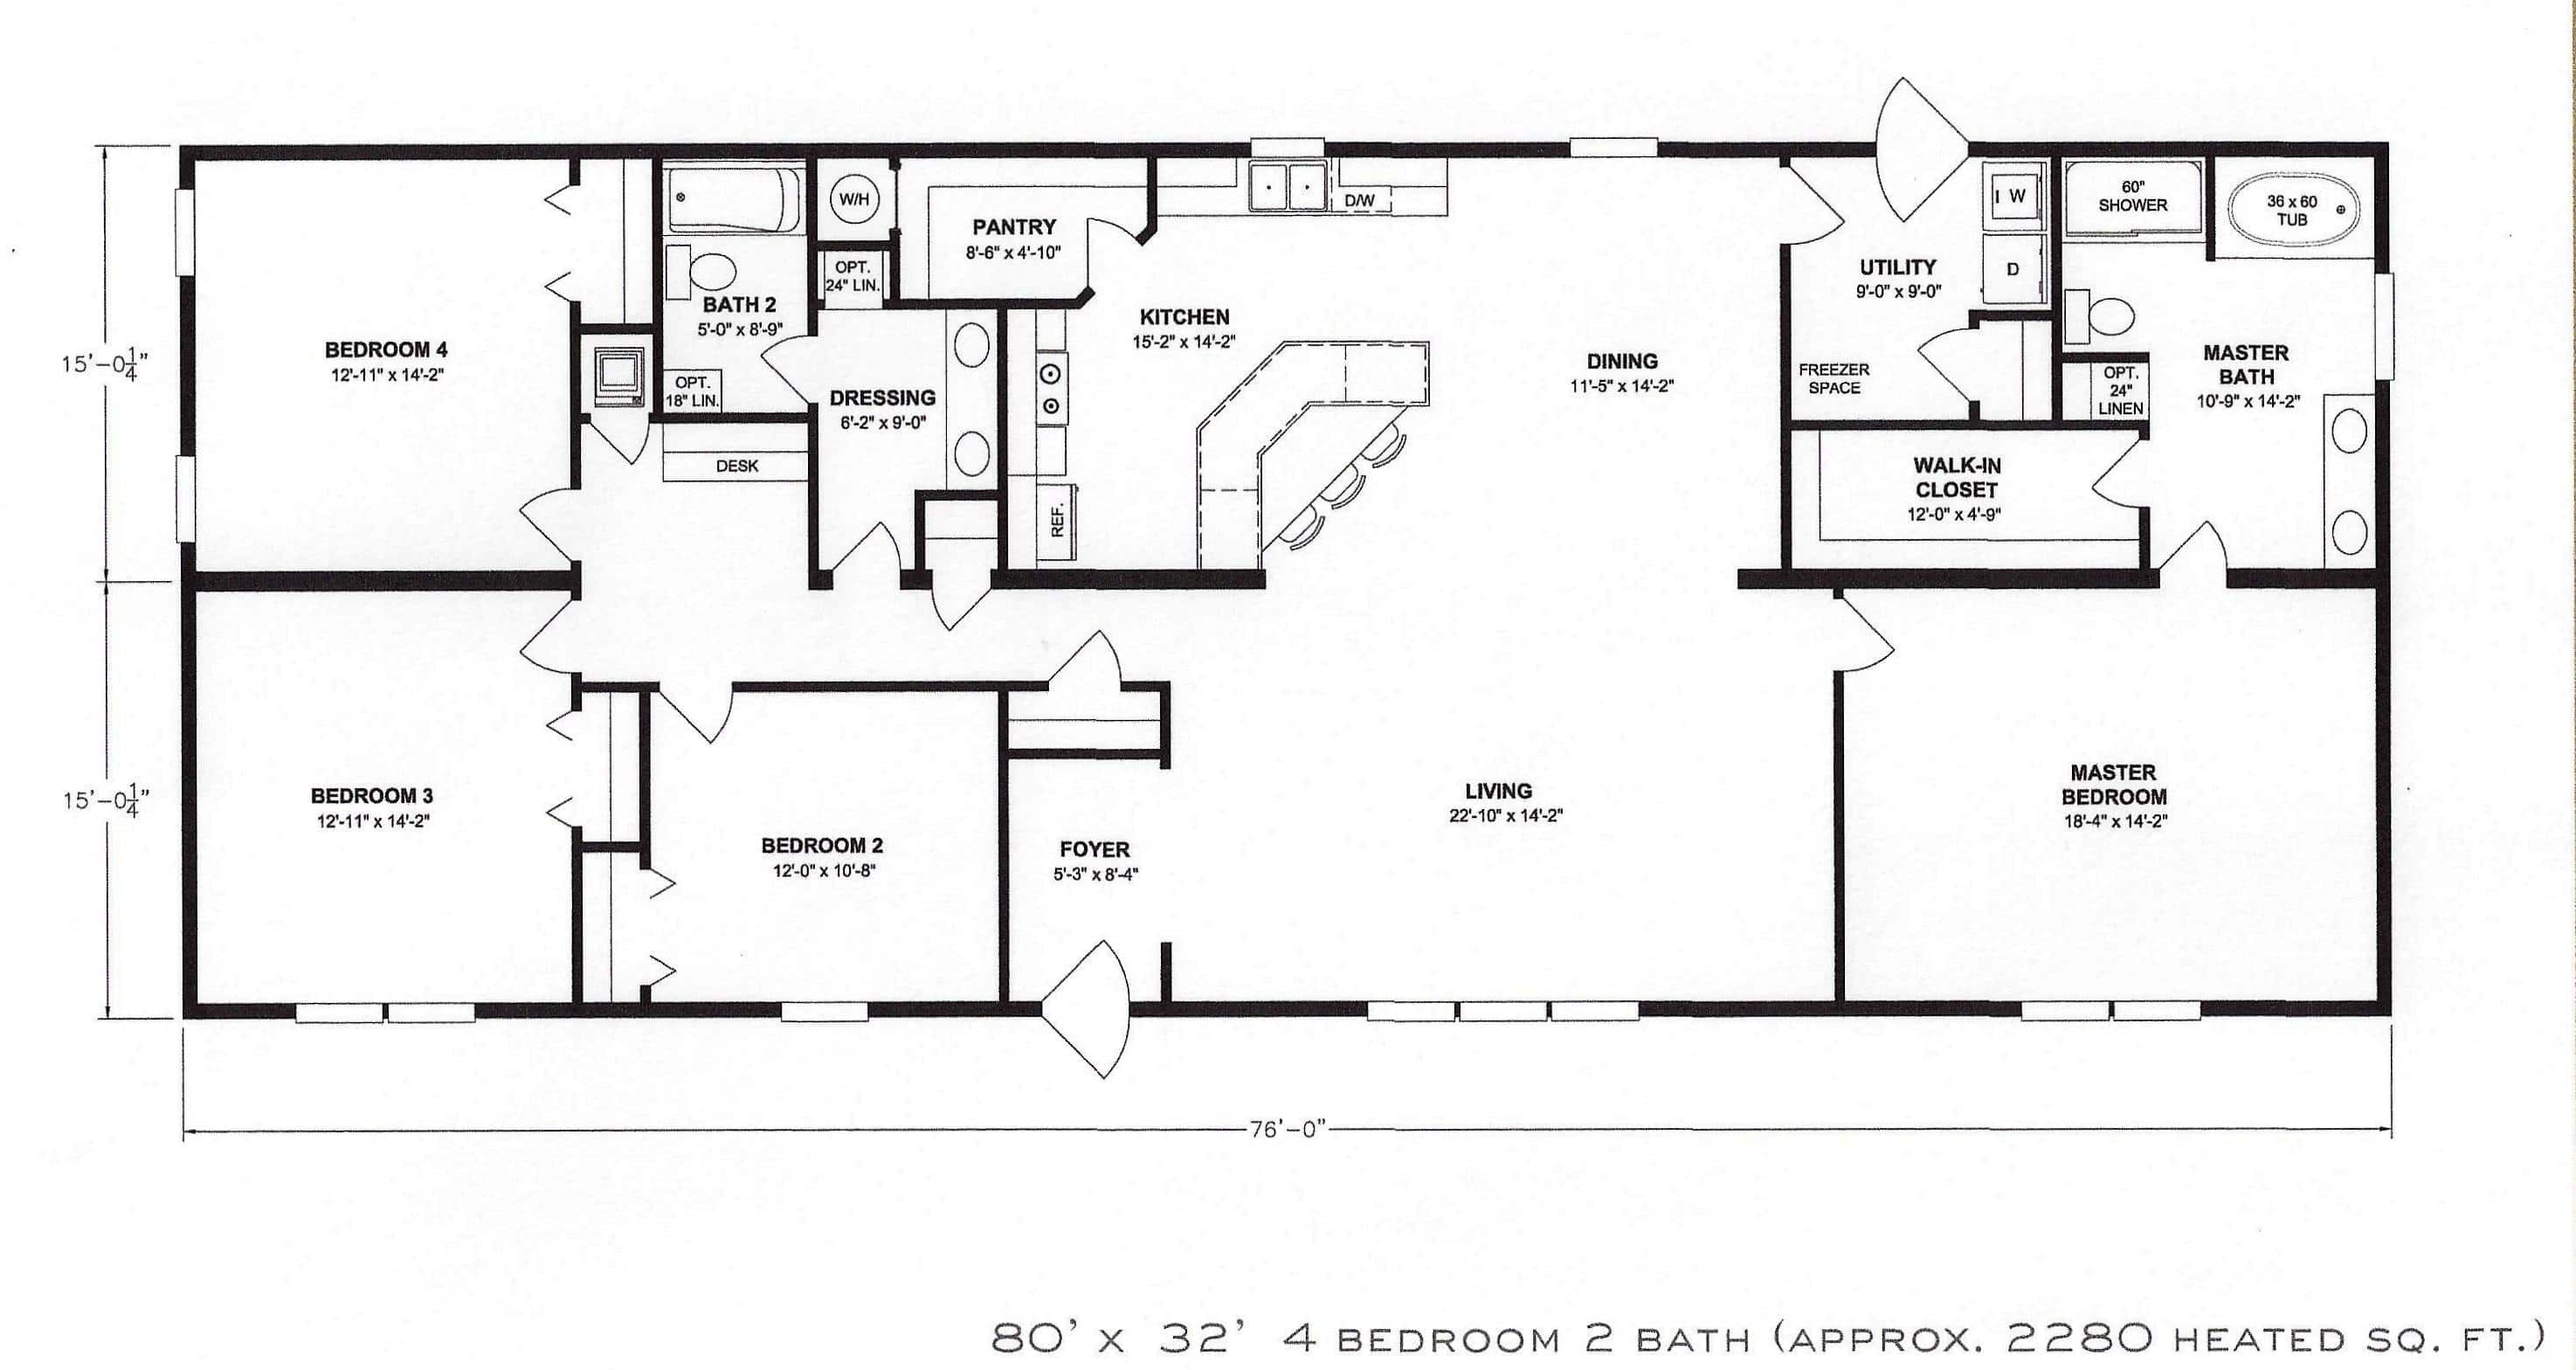 4 bedroom floor plans 4 bedroom house designs perth for 4 bedroom floorplans